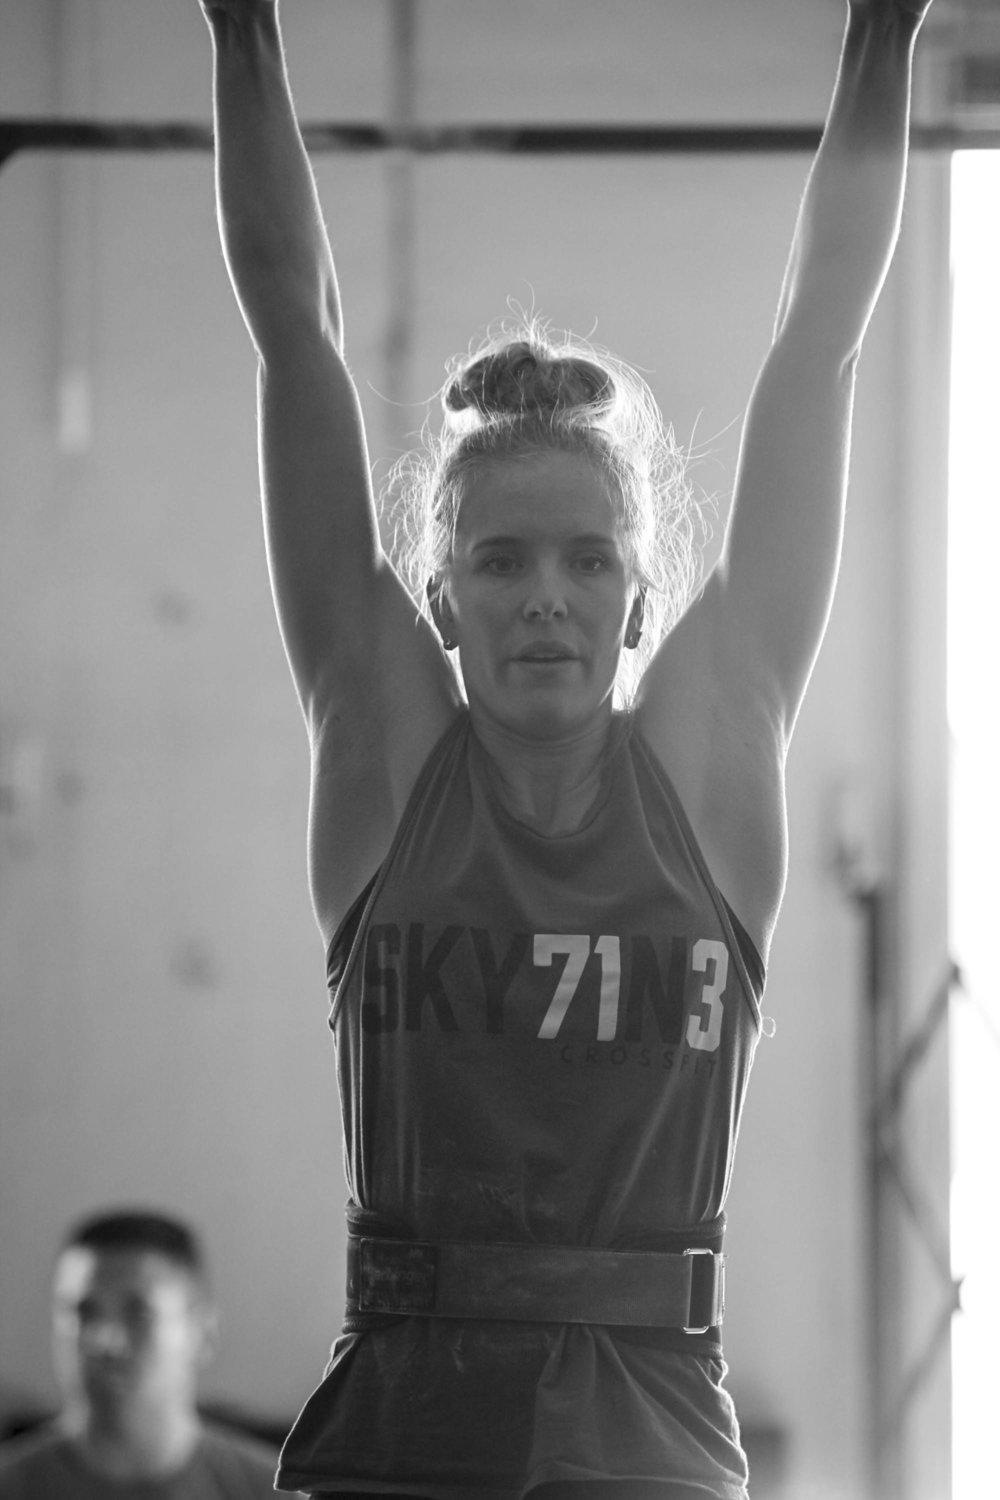 Coach Nienke will be furthering her education next month by attending CrossFit Level 2 Trainer seminar!